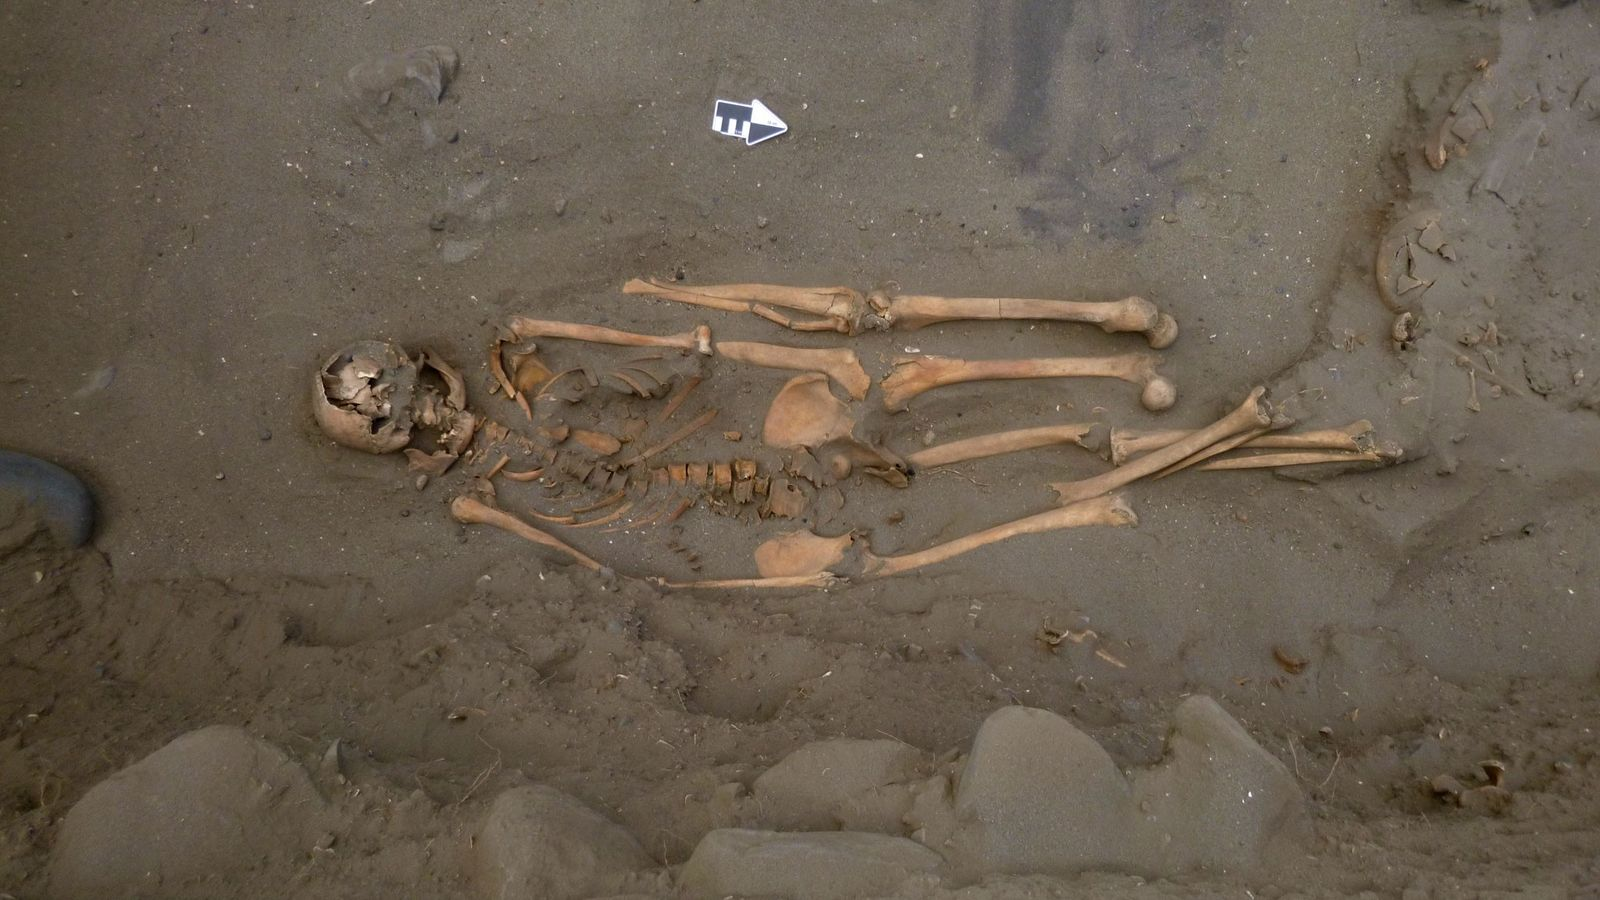 This ancient burial held a surprise for archaeologists: Two additional left legs were buried alongside the ...